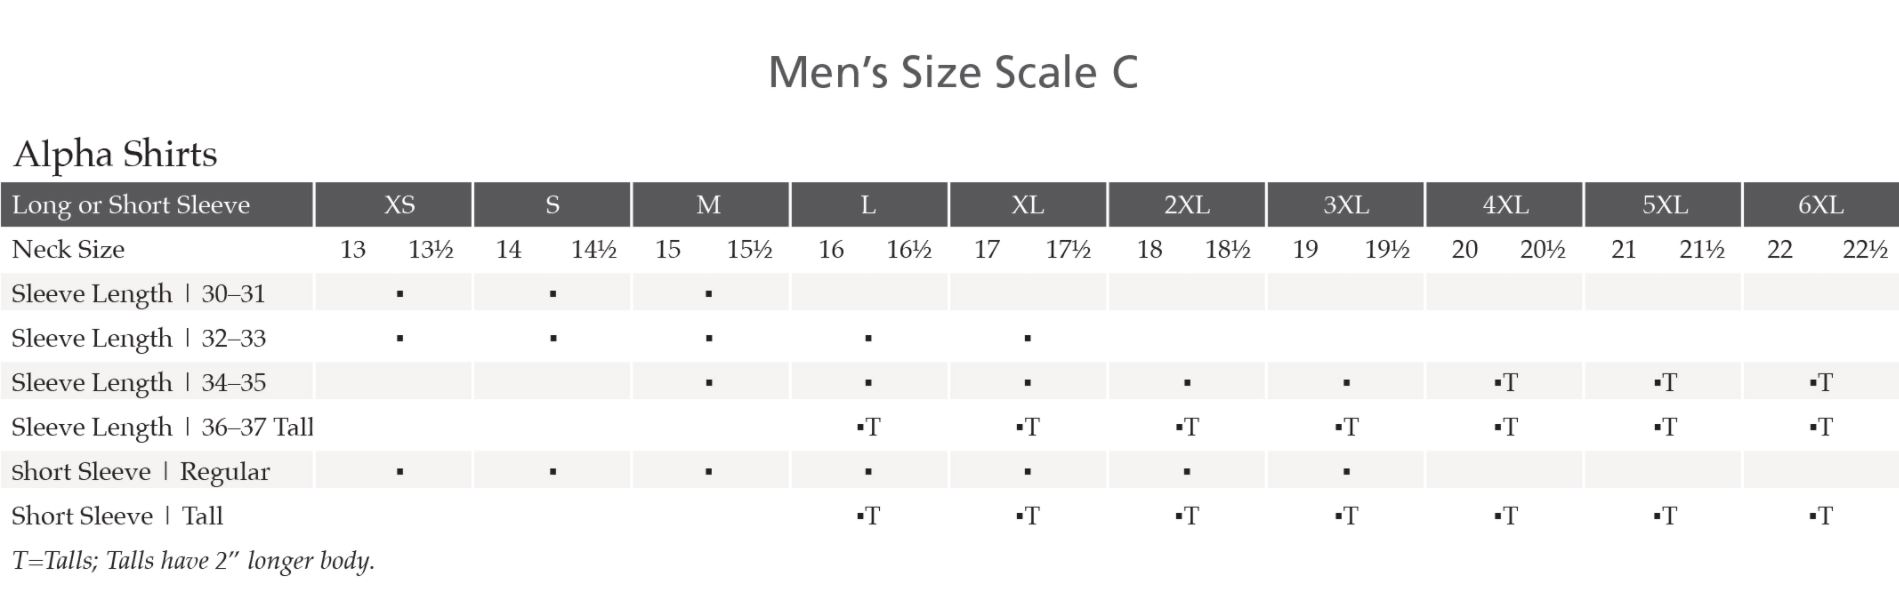 edwards-size-chart.jpg